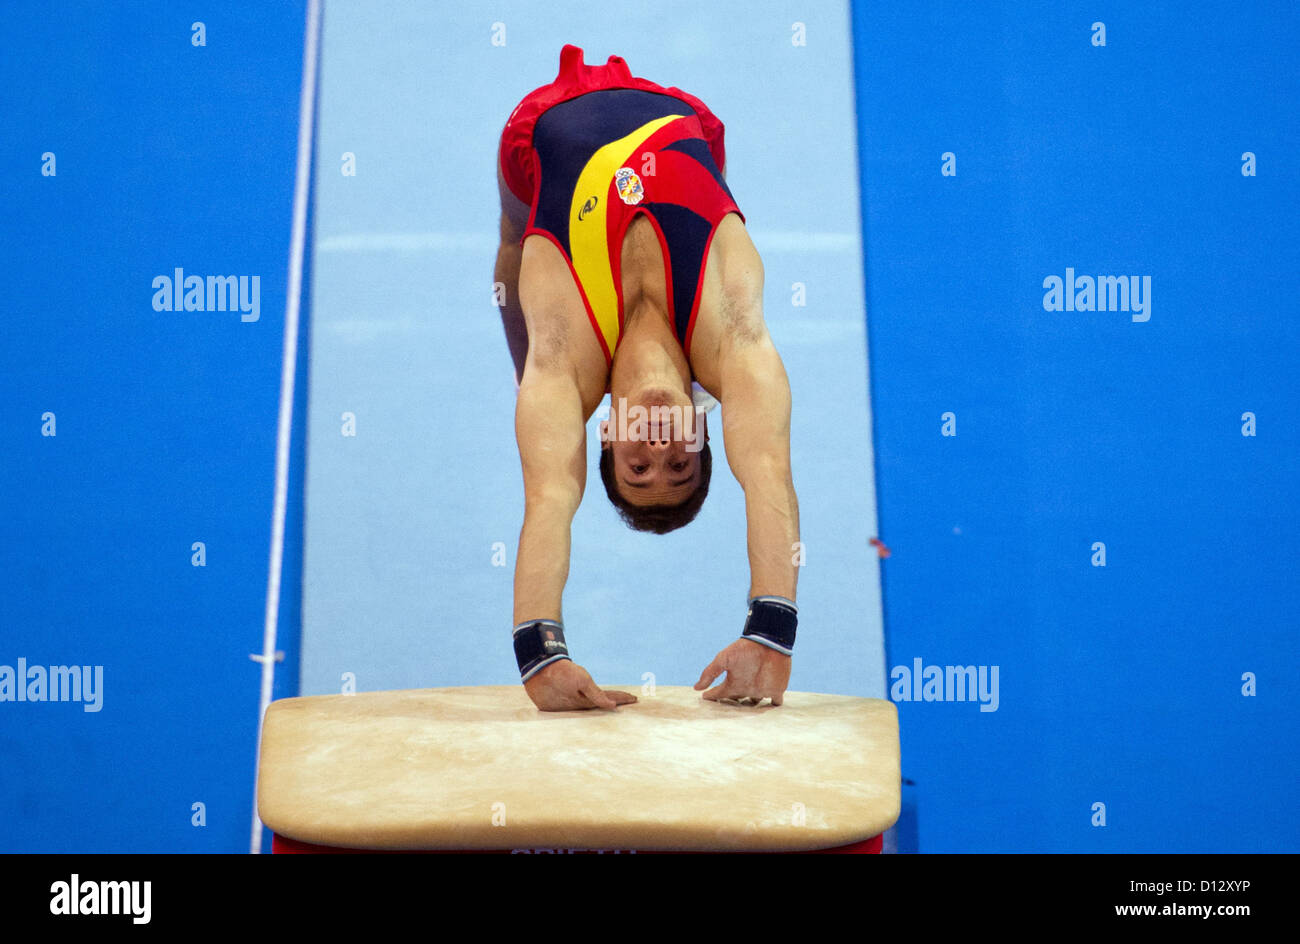 Fabian Gonzales from Spain competes in the category 'jumping' during the athletics world cup in Stuttgart, - Stock Image